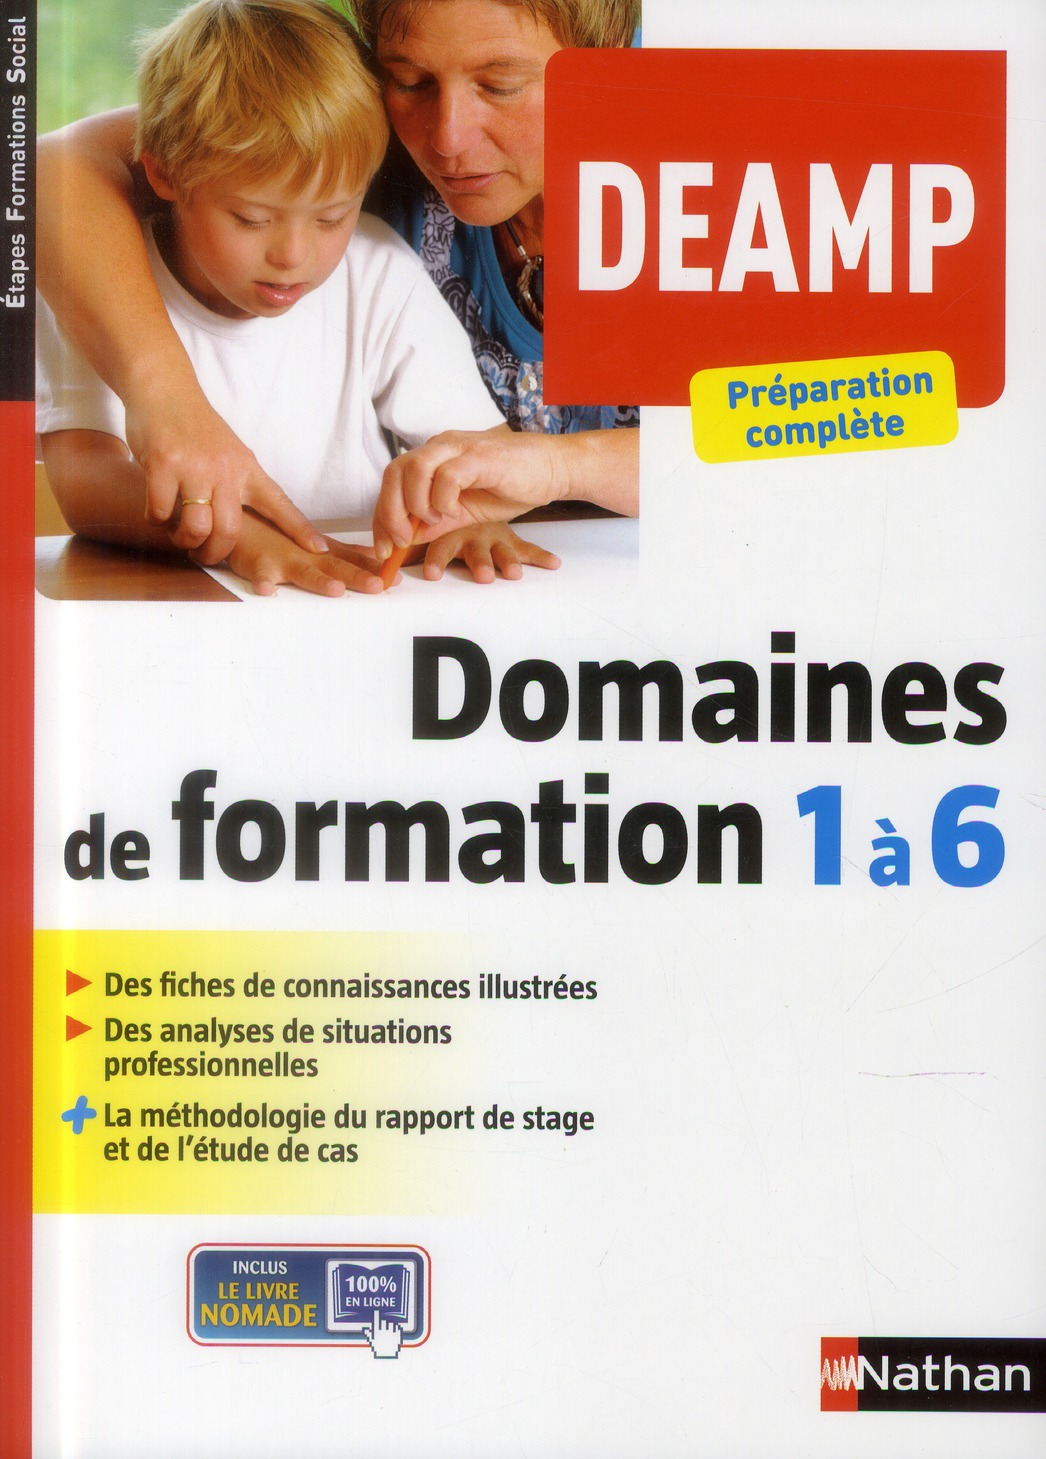 DOMAINES FORMATION 1 A 6 DEAMP